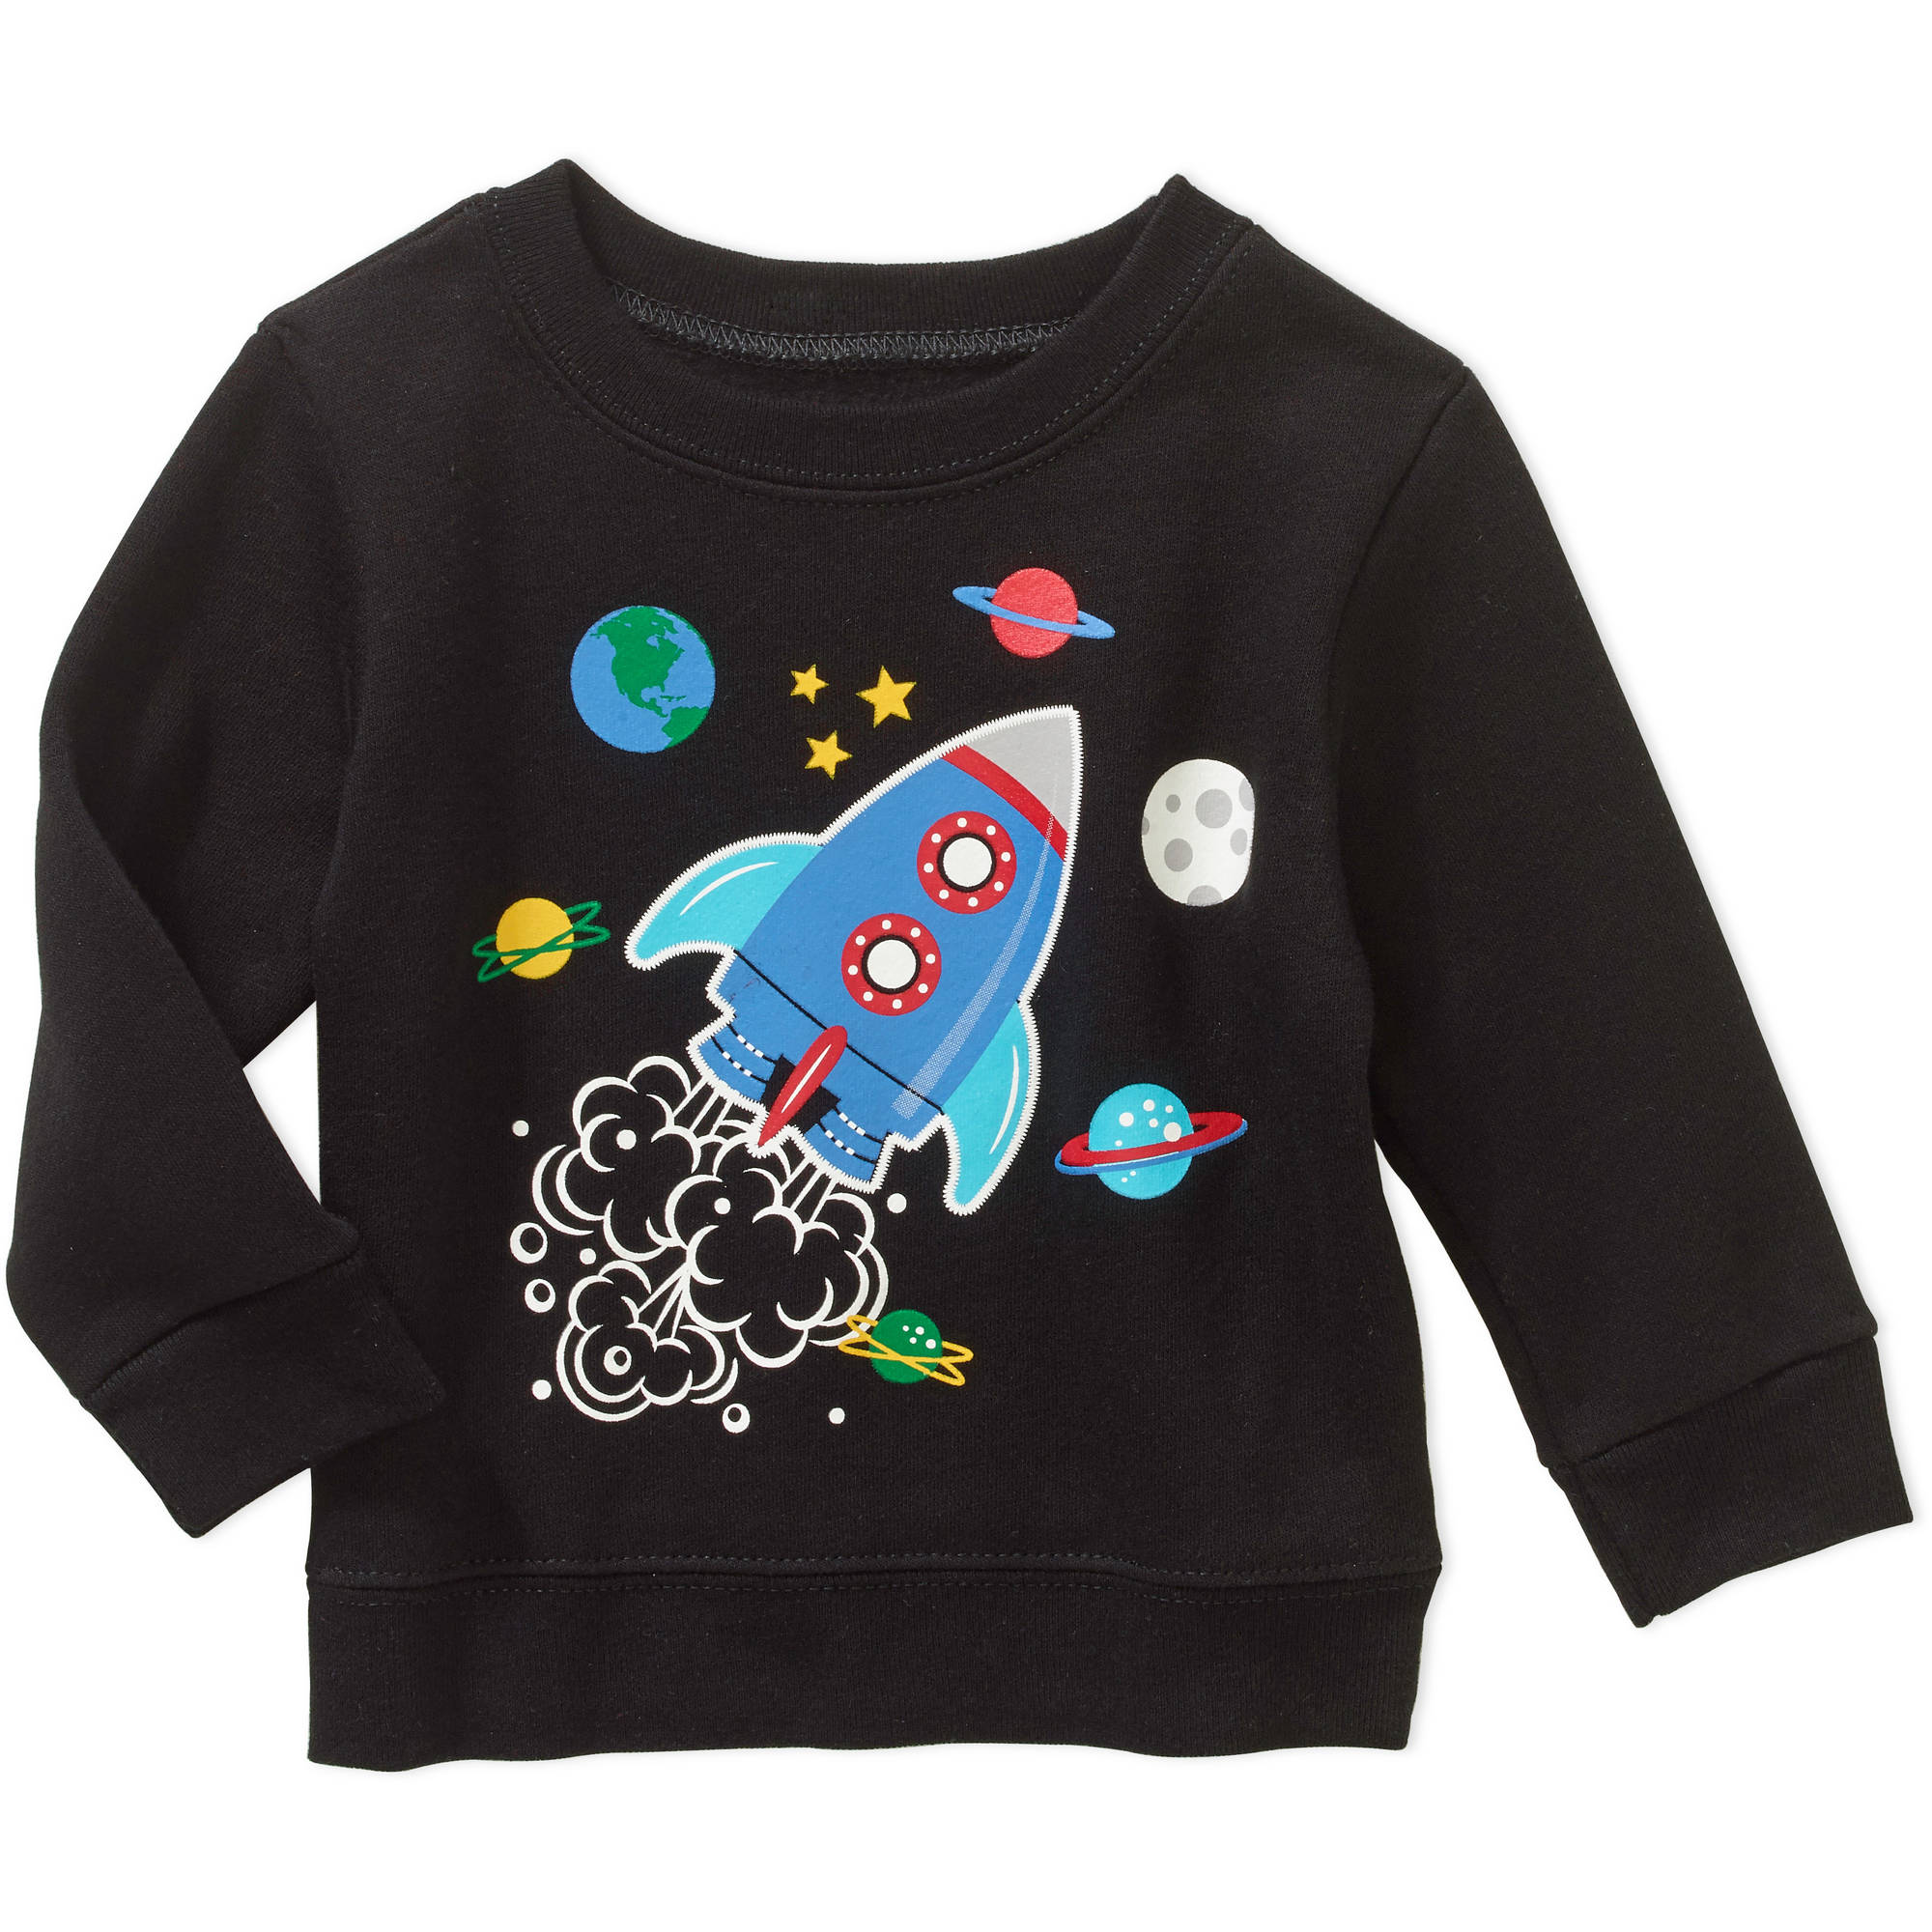 Garanimals Baby Boy Graphic Sweatshirt